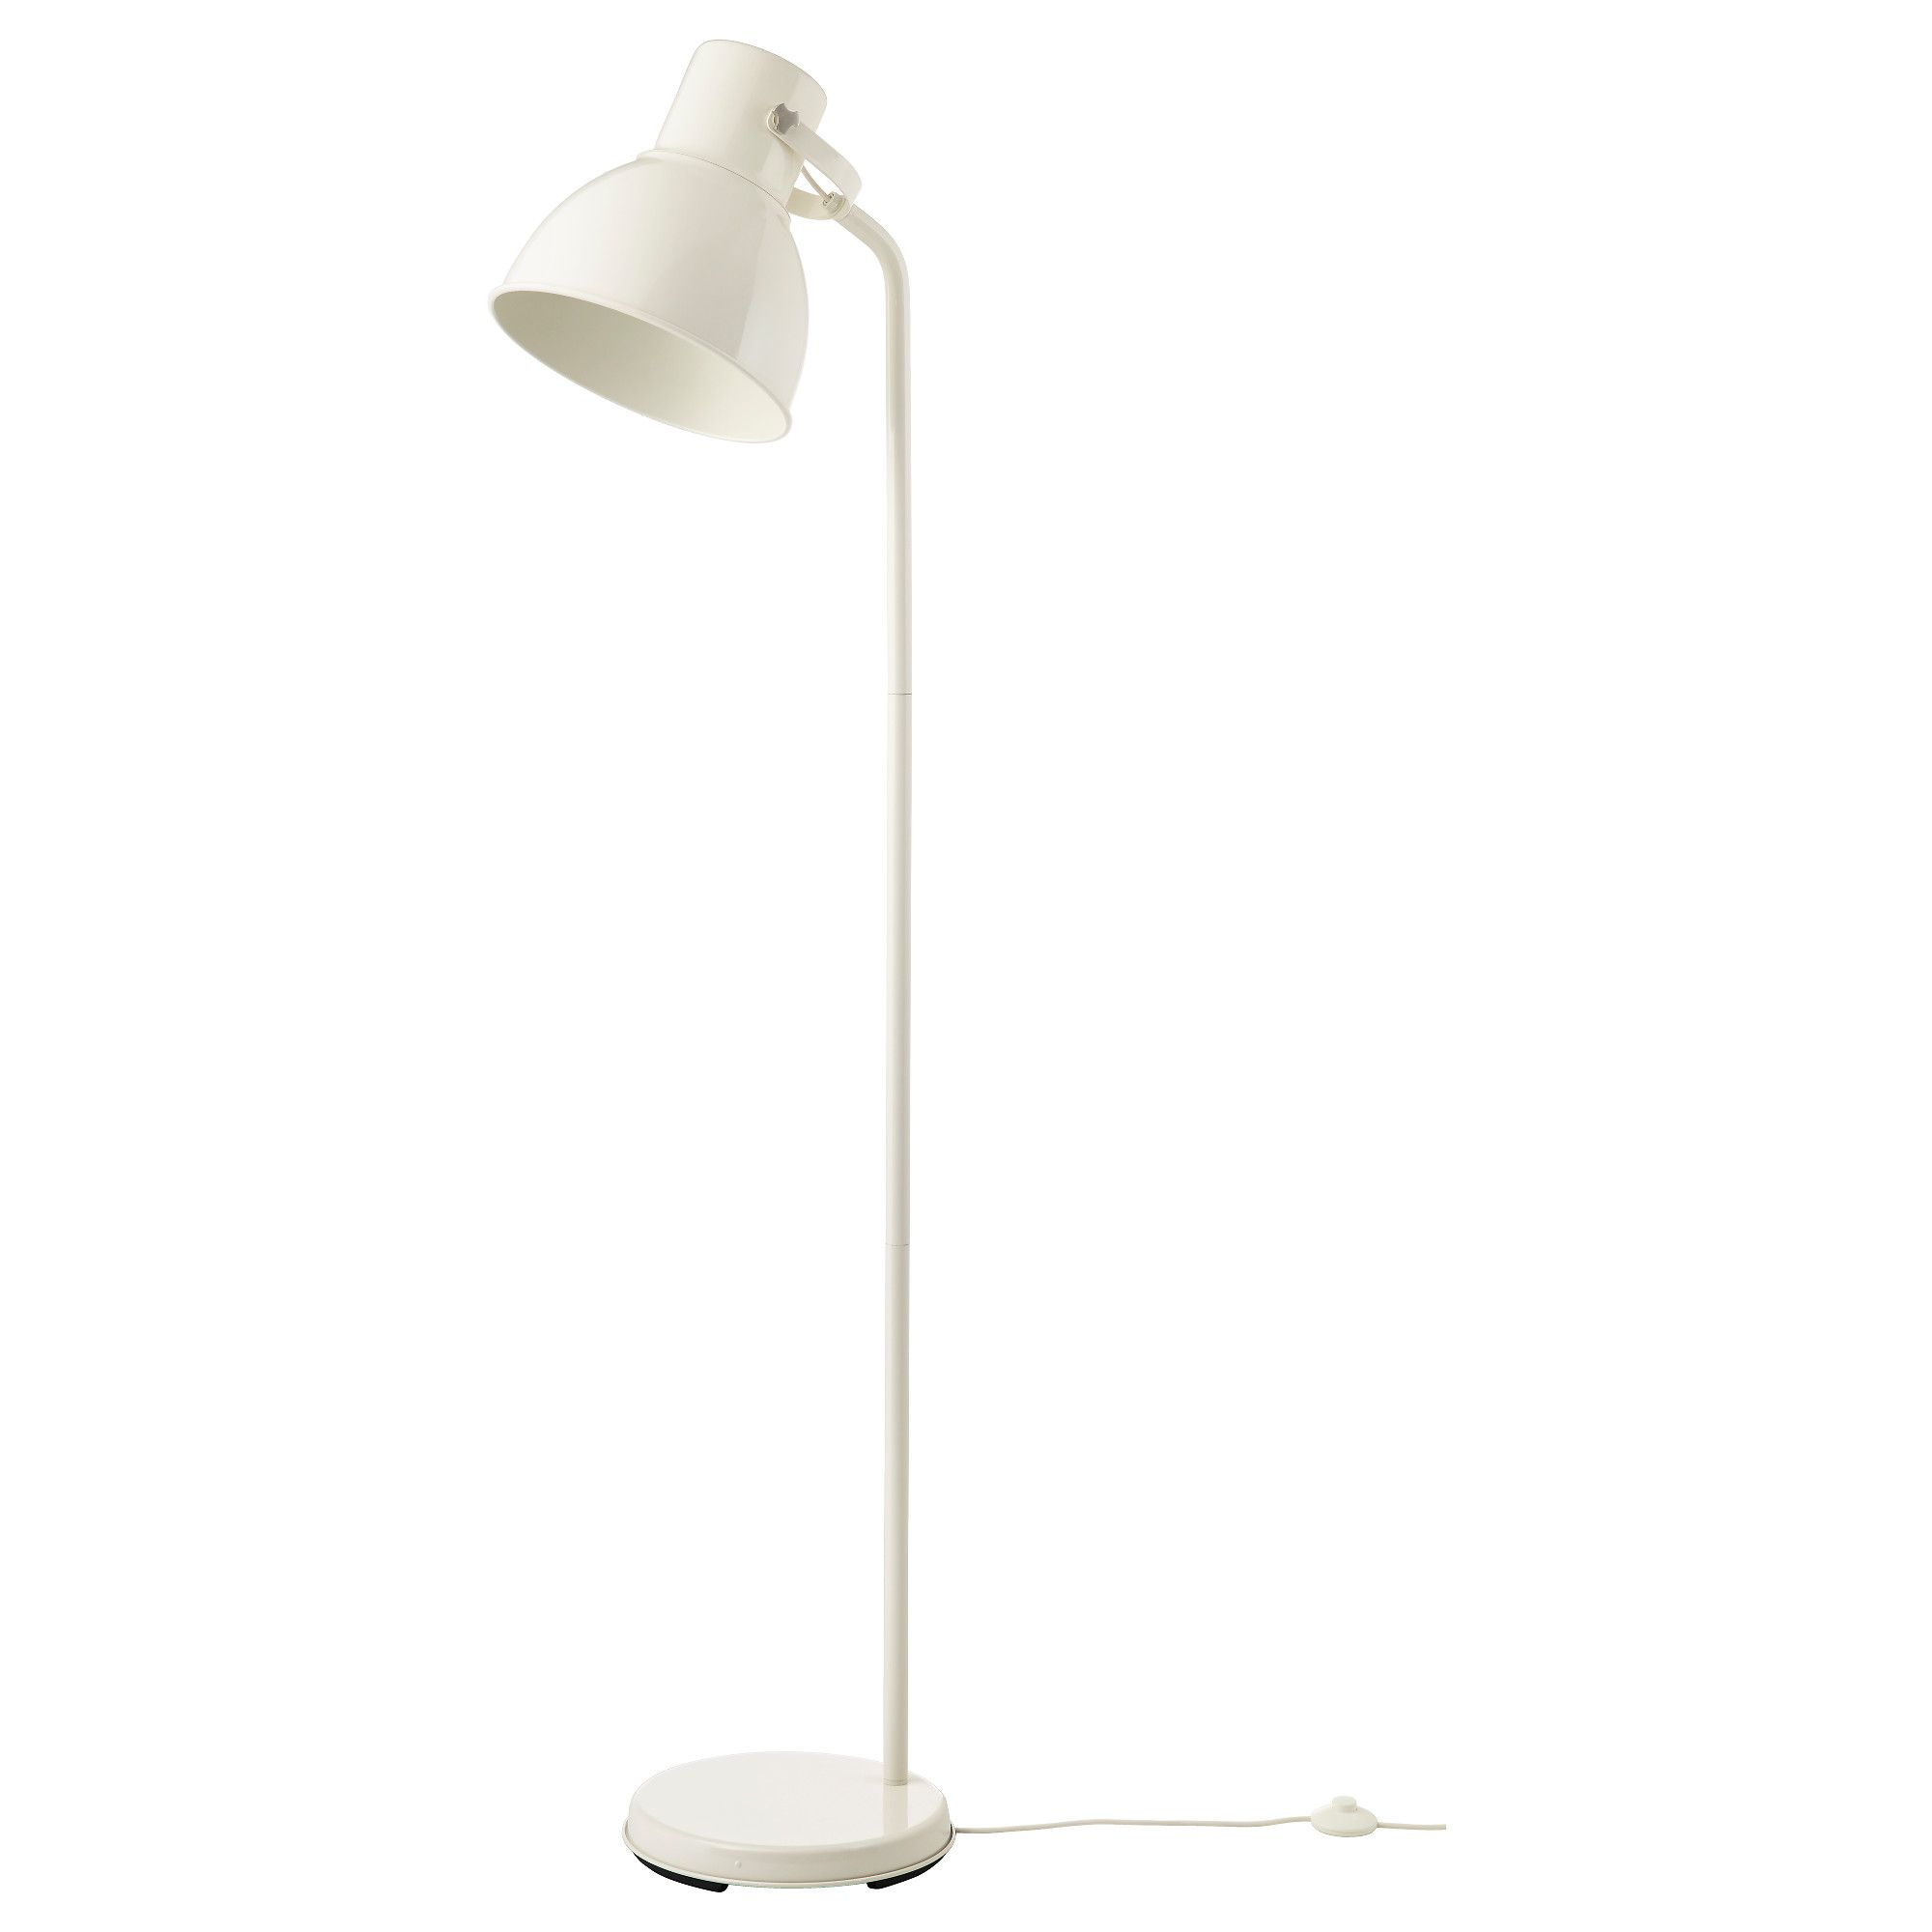 Us Furniture And Home Furnishings Ikea Stehlampe Stehlampe